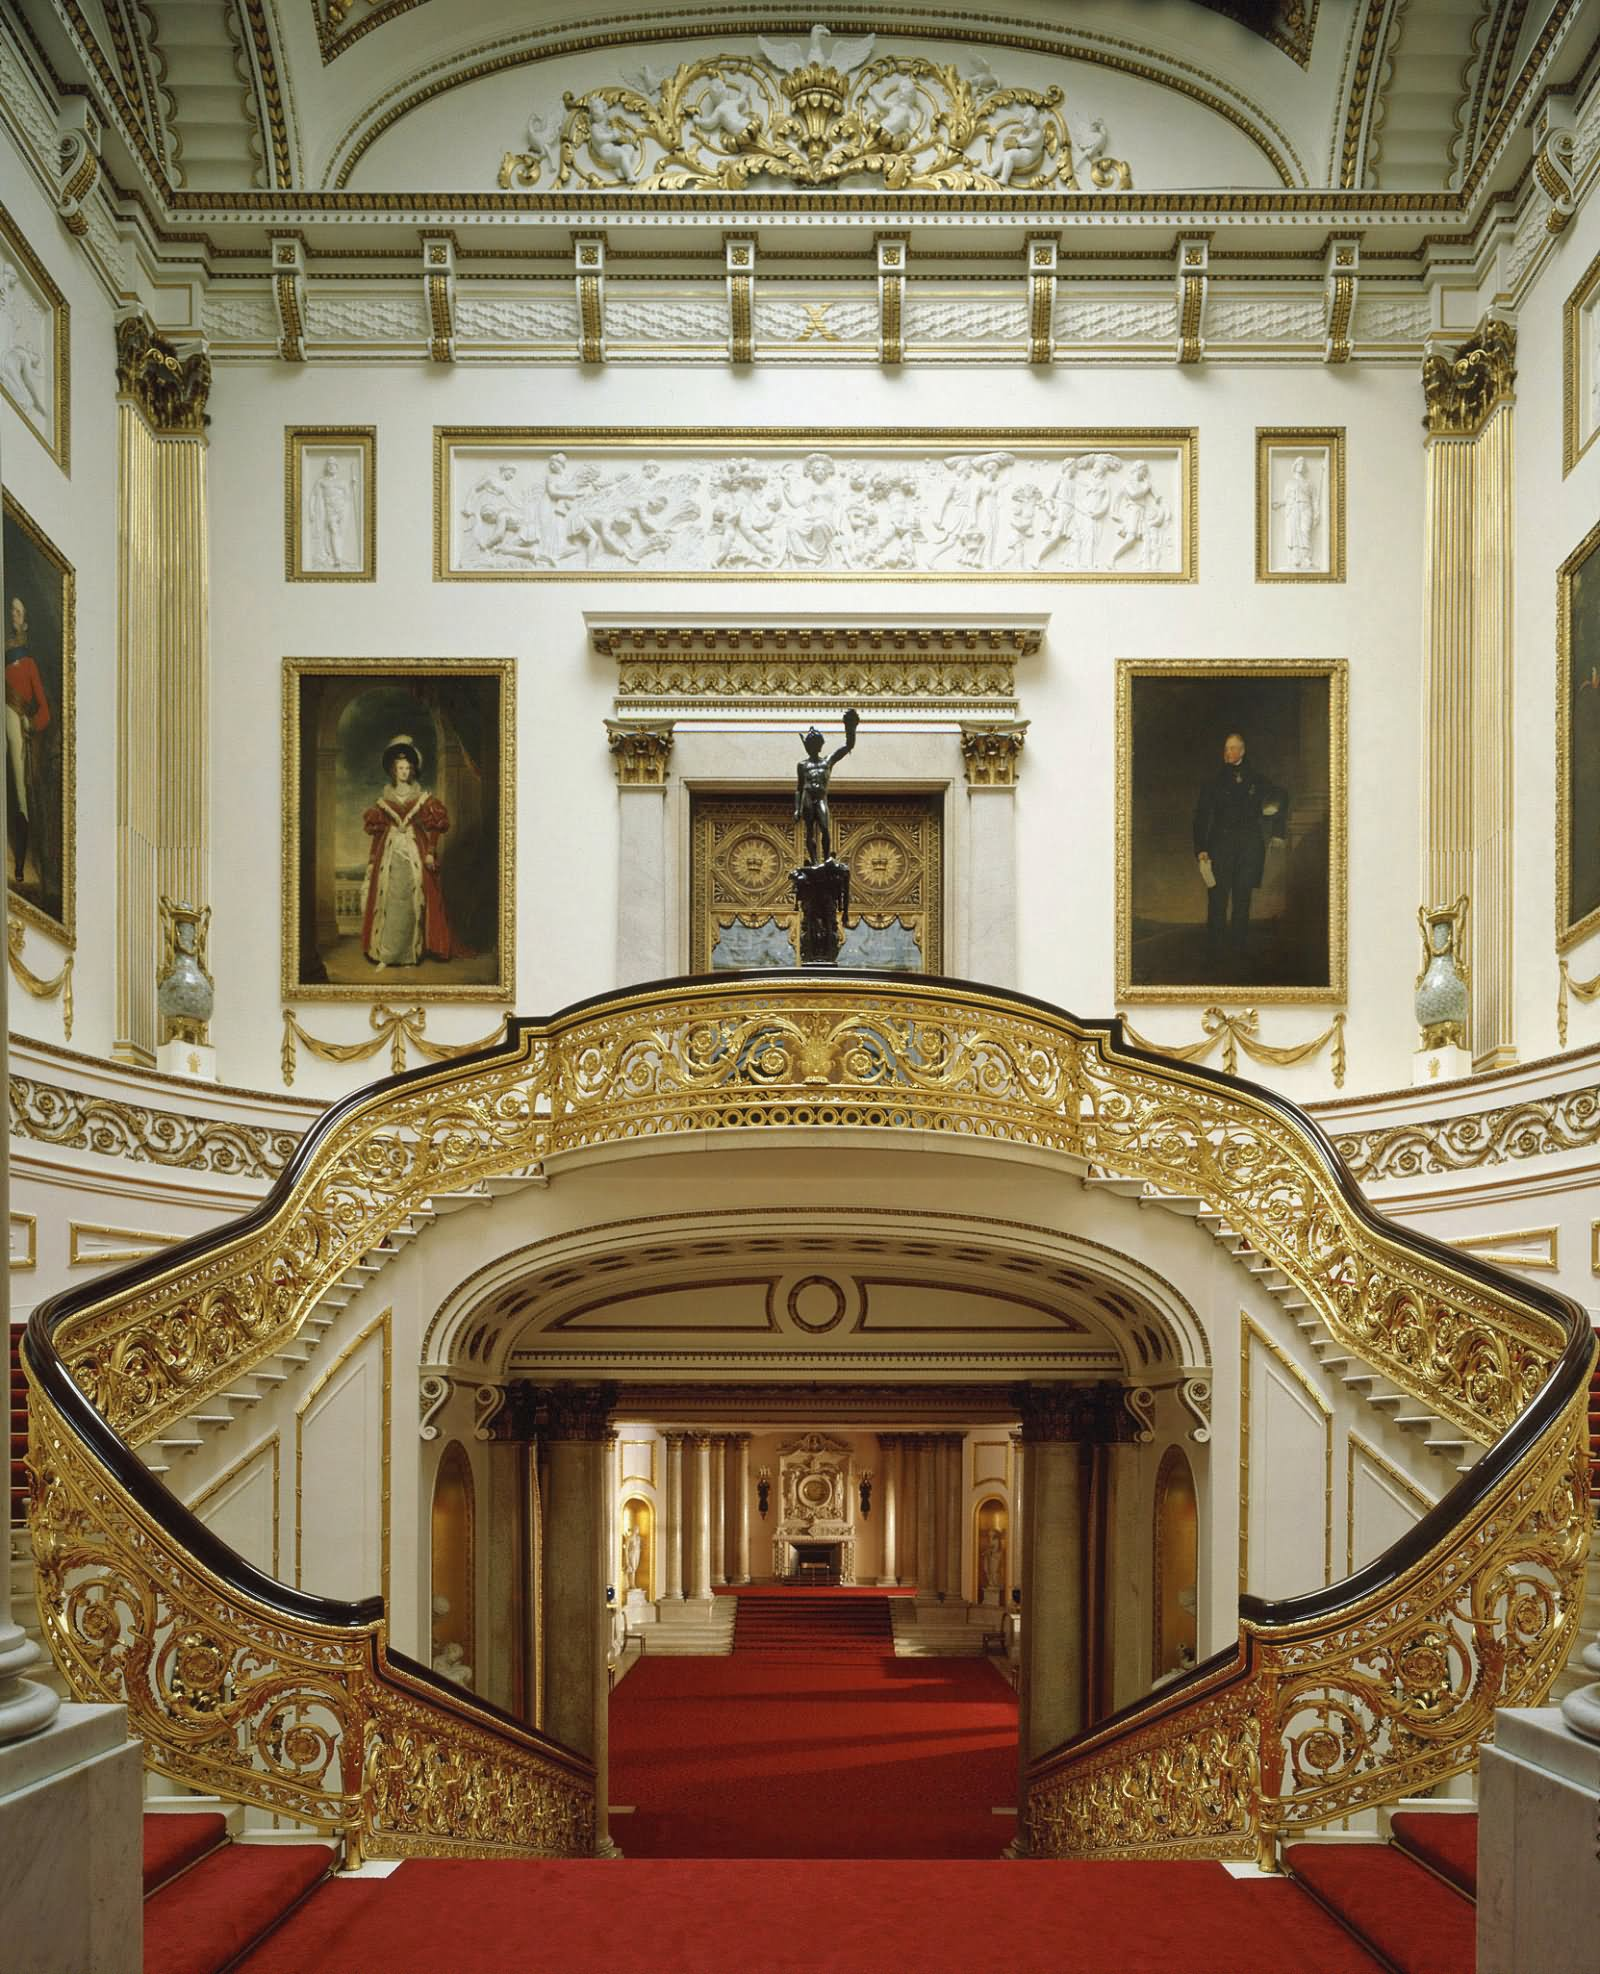 Buckingham Palace Inside View - THE MOST BEAUTIFUL INTERIOR PICTURES OF BUCKINGHAM PALACE LONDON